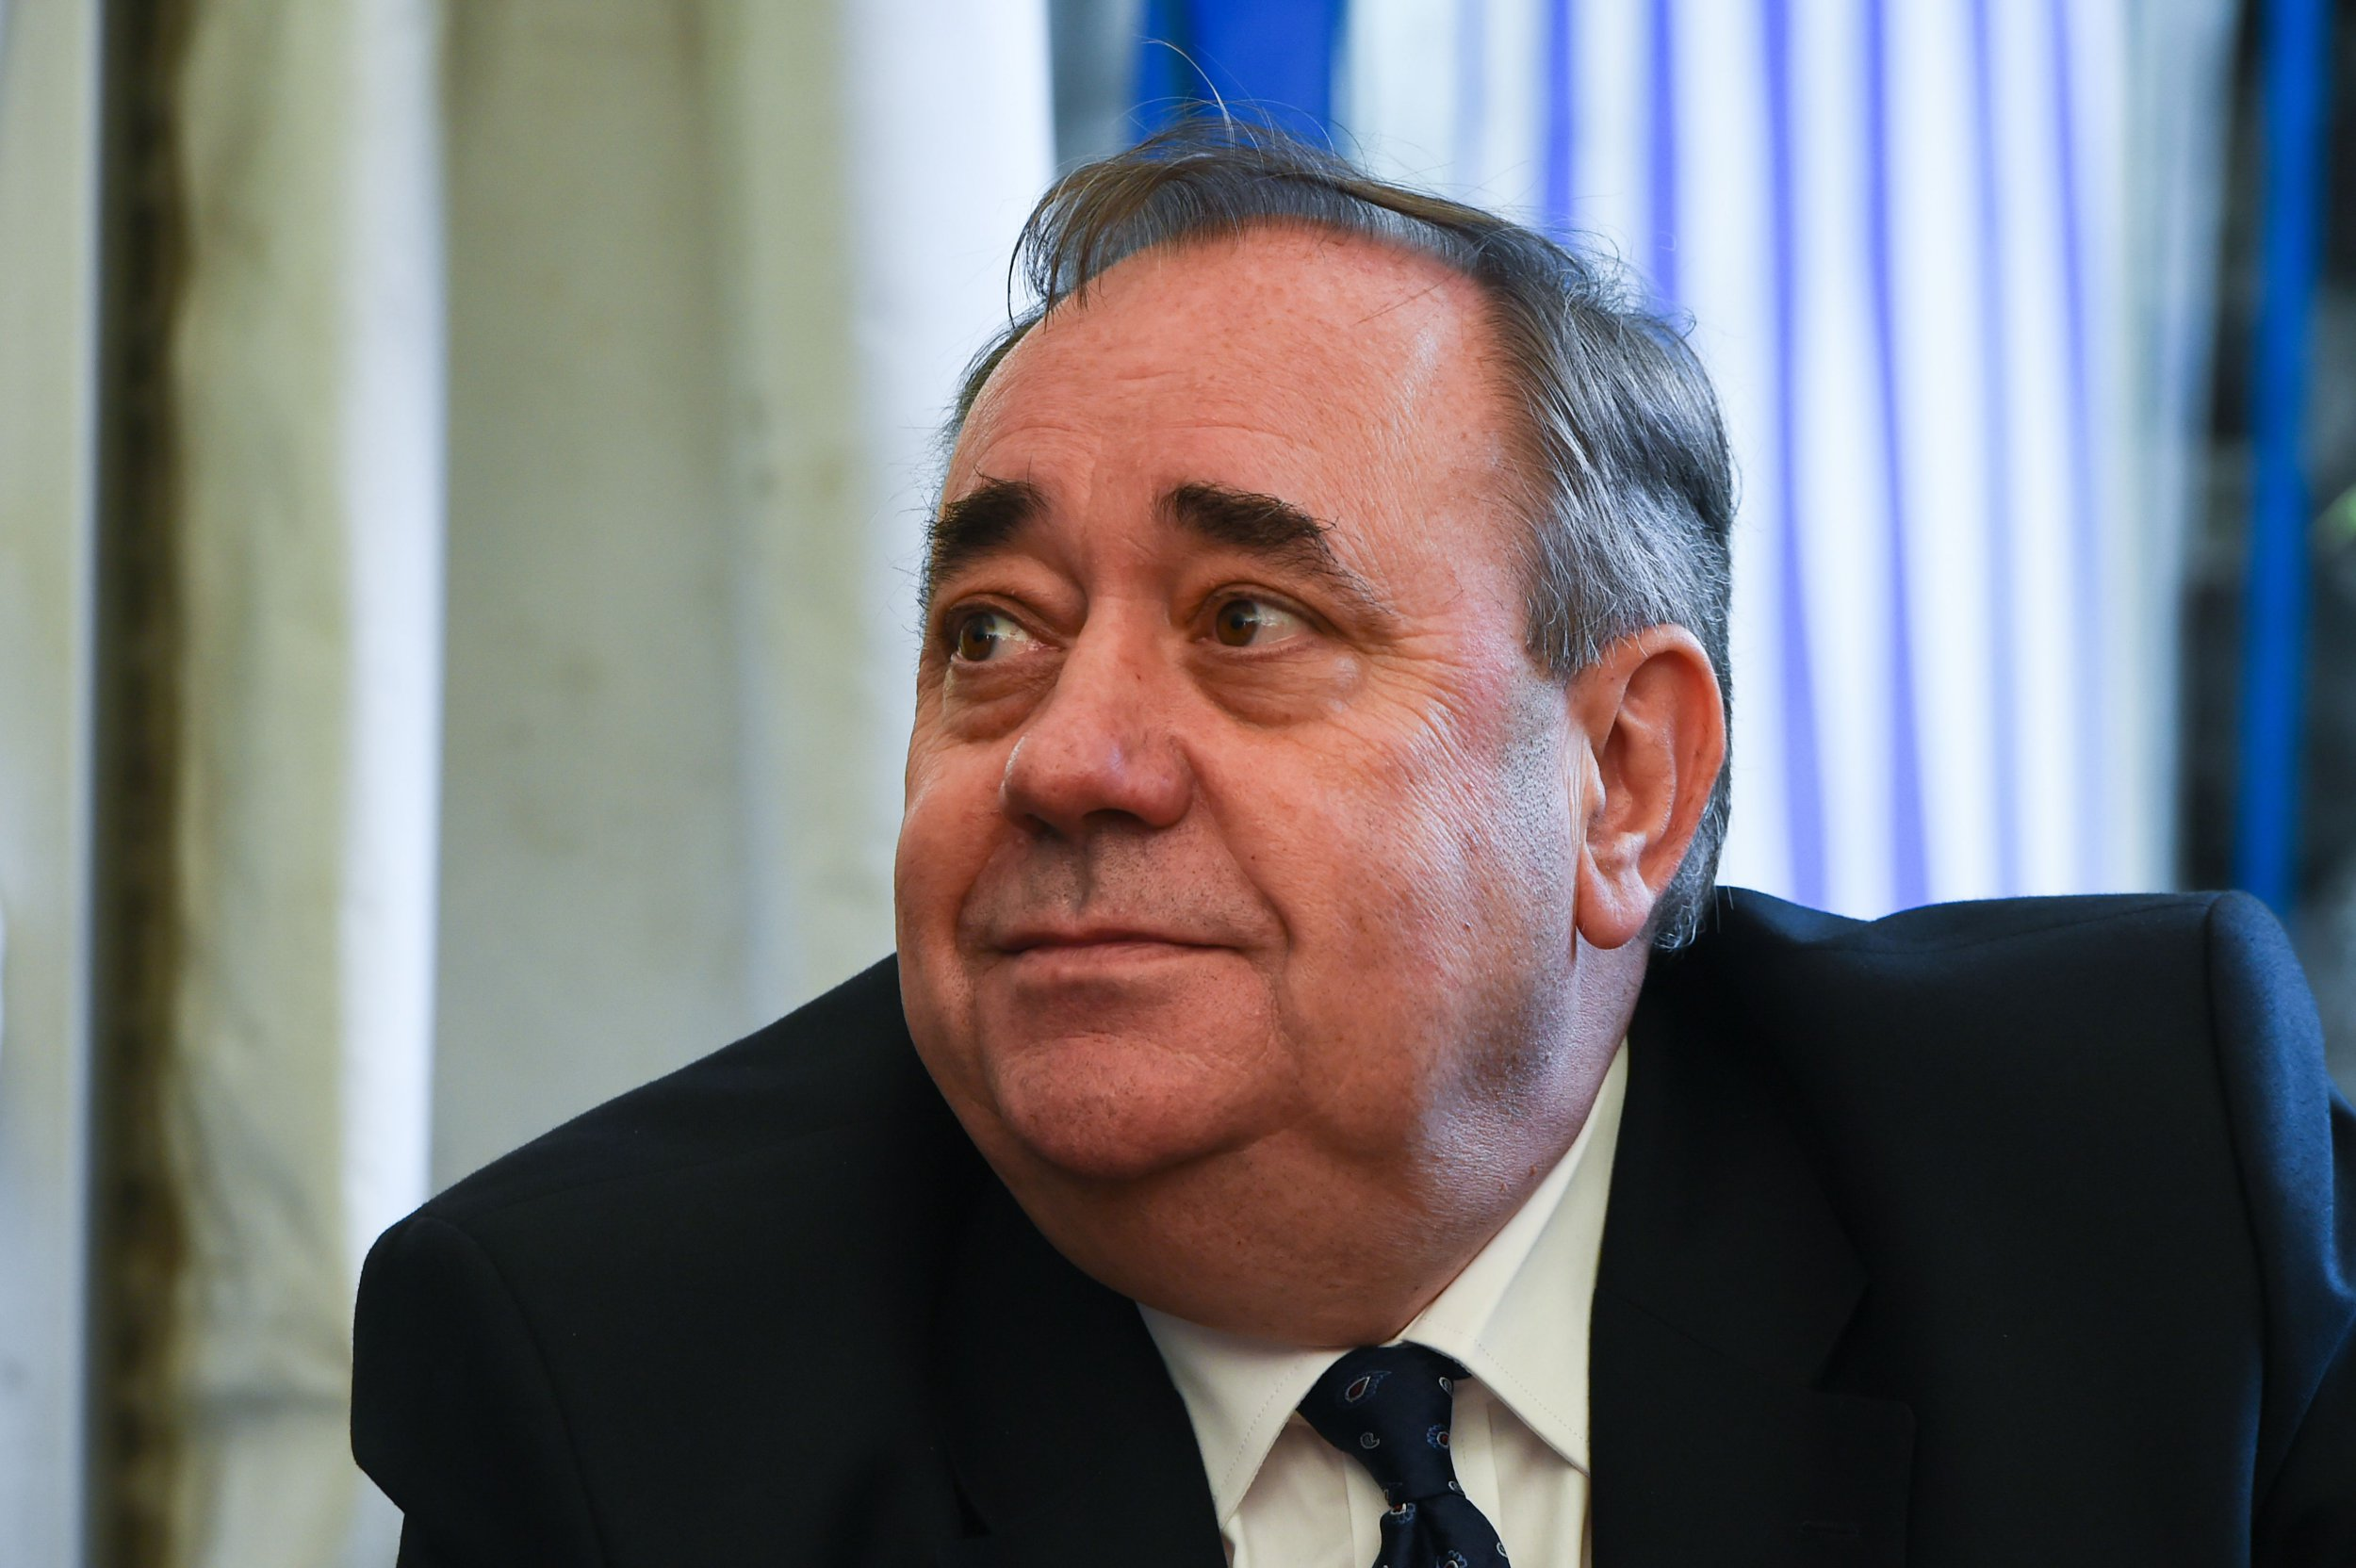 Former First Minister of Scotland Alex Salmond sits at a table with journalists in Linlithgow, west of Edinburgh, on August 24, 2018. - Alex Salmond, the former nationalist leader who took Scotland to the brink of independence in 2014, has denied accusations of sexual misconduct which were reported in a Scottish newspaper on Friday. (Photo by ANDY BUCHANAN / AFP)ANDY BUCHANAN/AFP/Getty Images